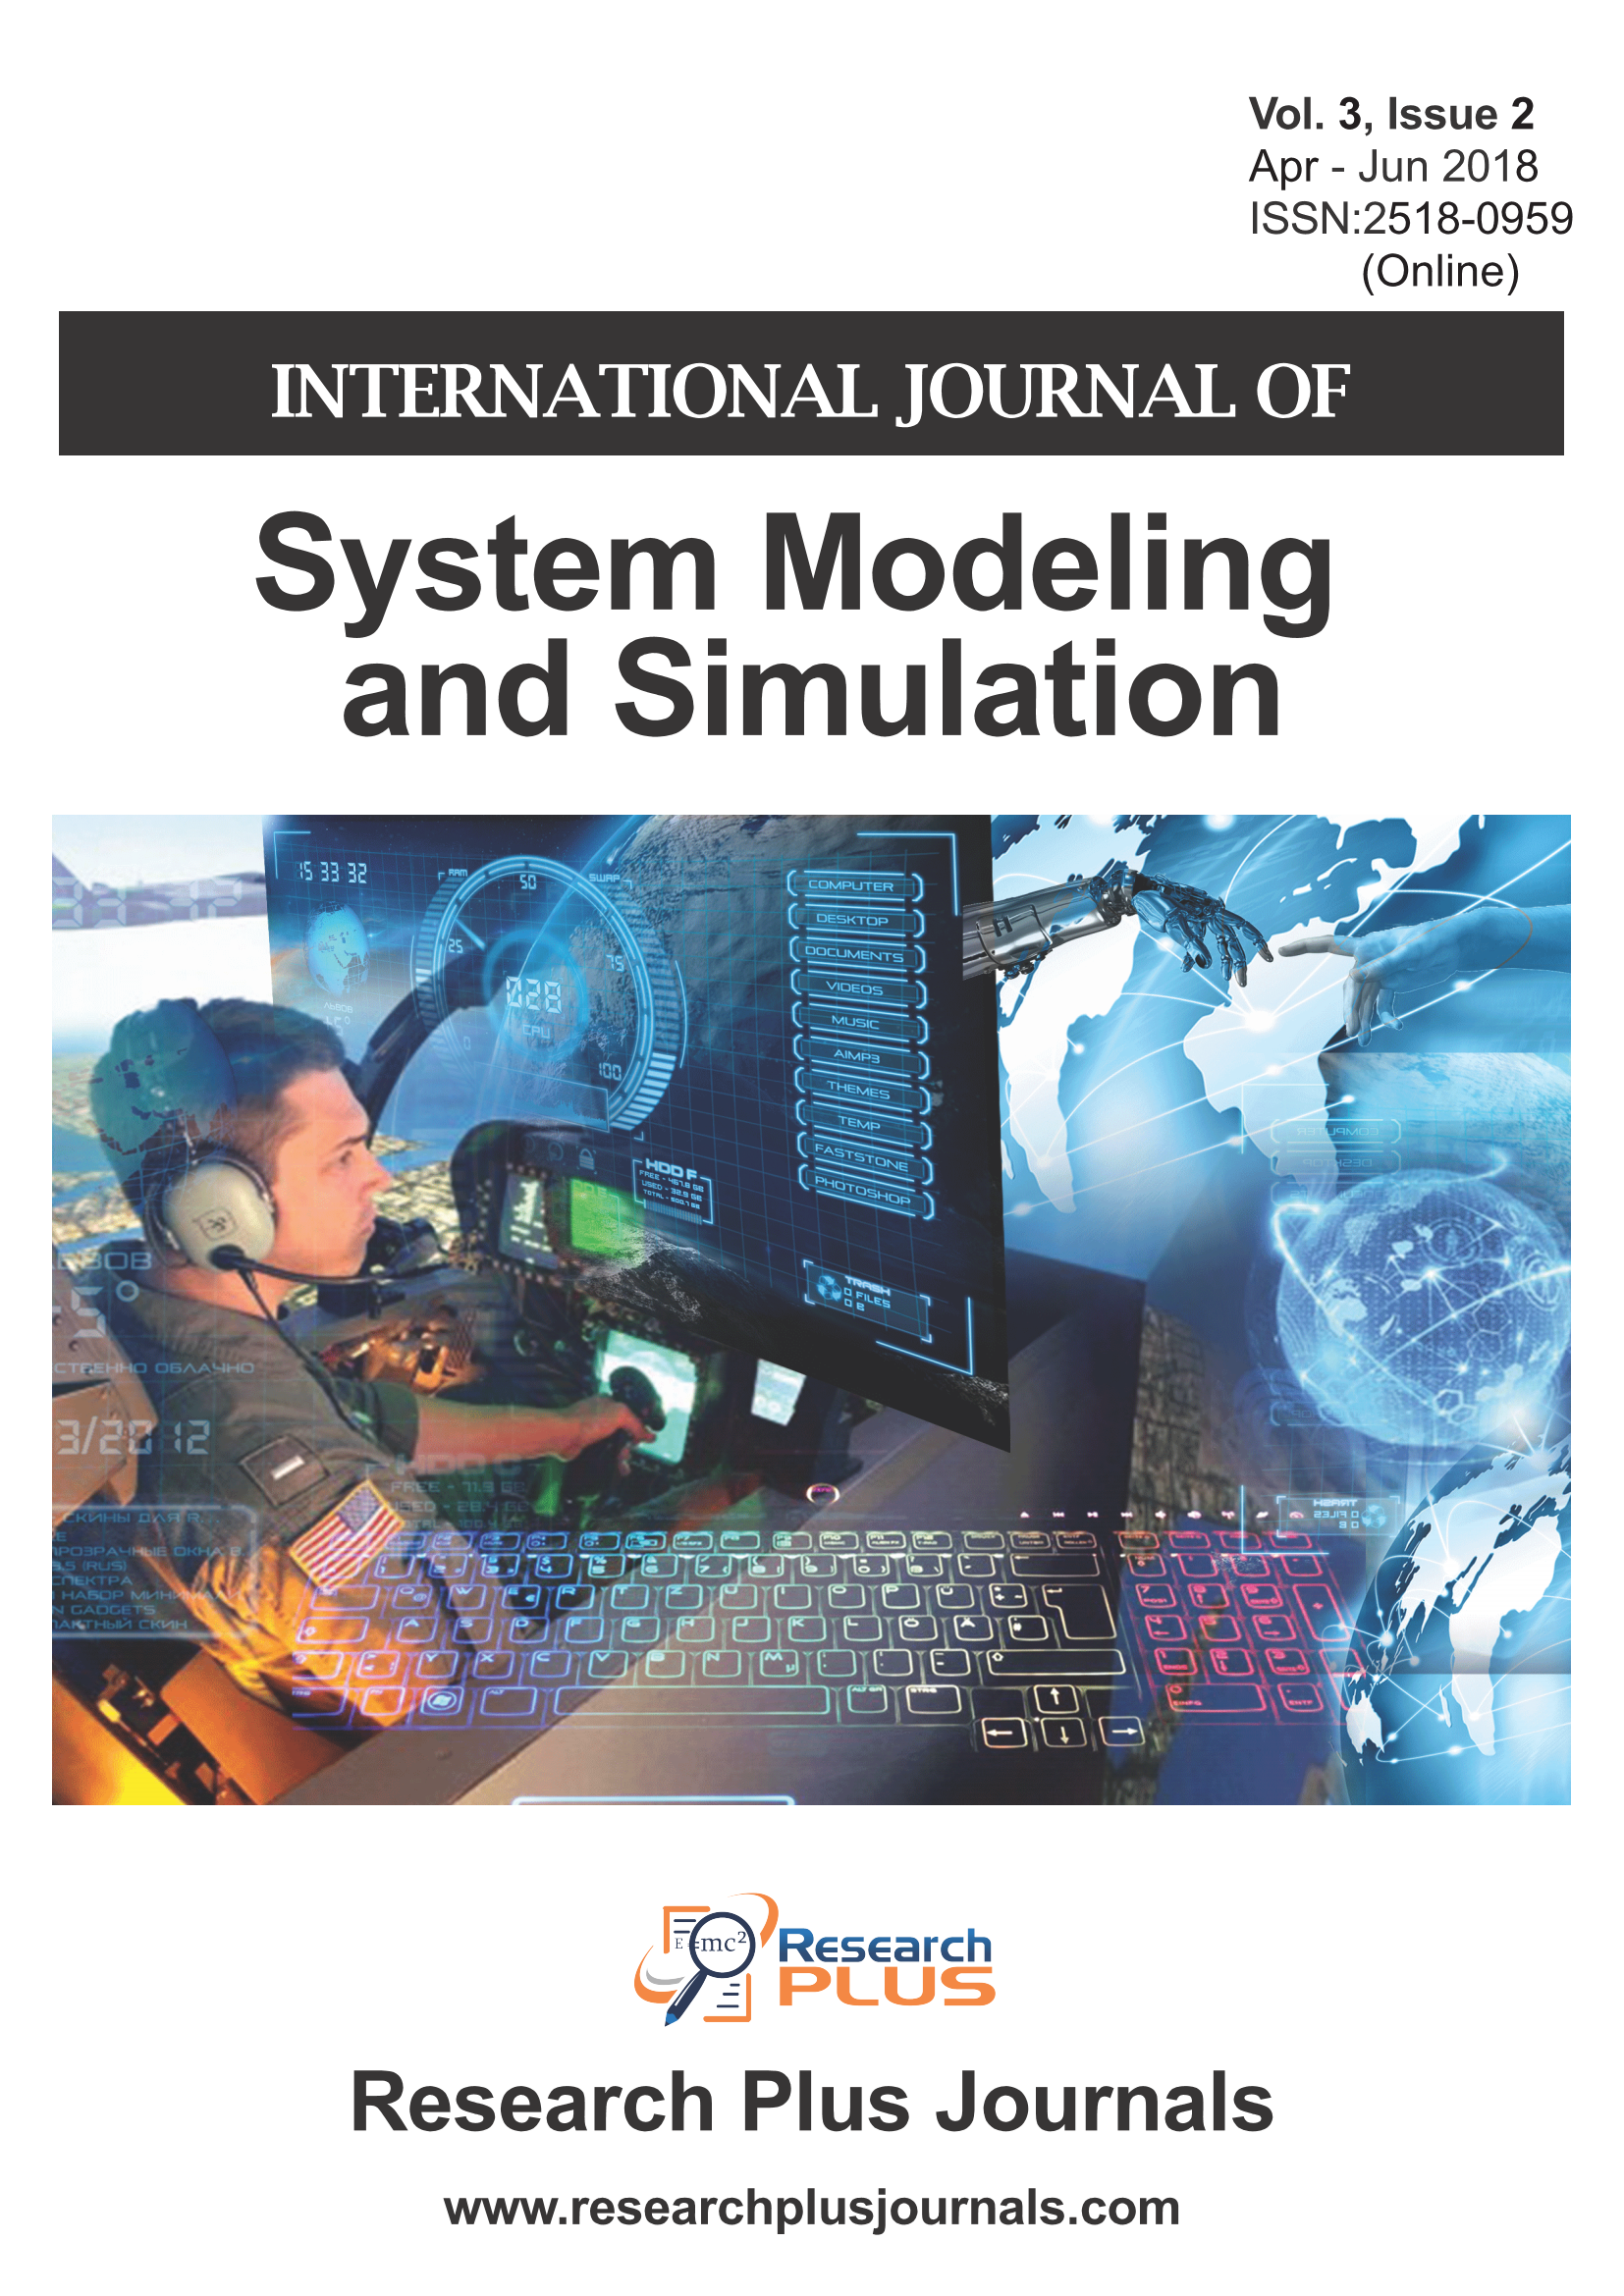 Volume 3, Issue 2, International Journal of System Modeling and Simulation (IJSMS)  (Online ISSN: 2518-0959)